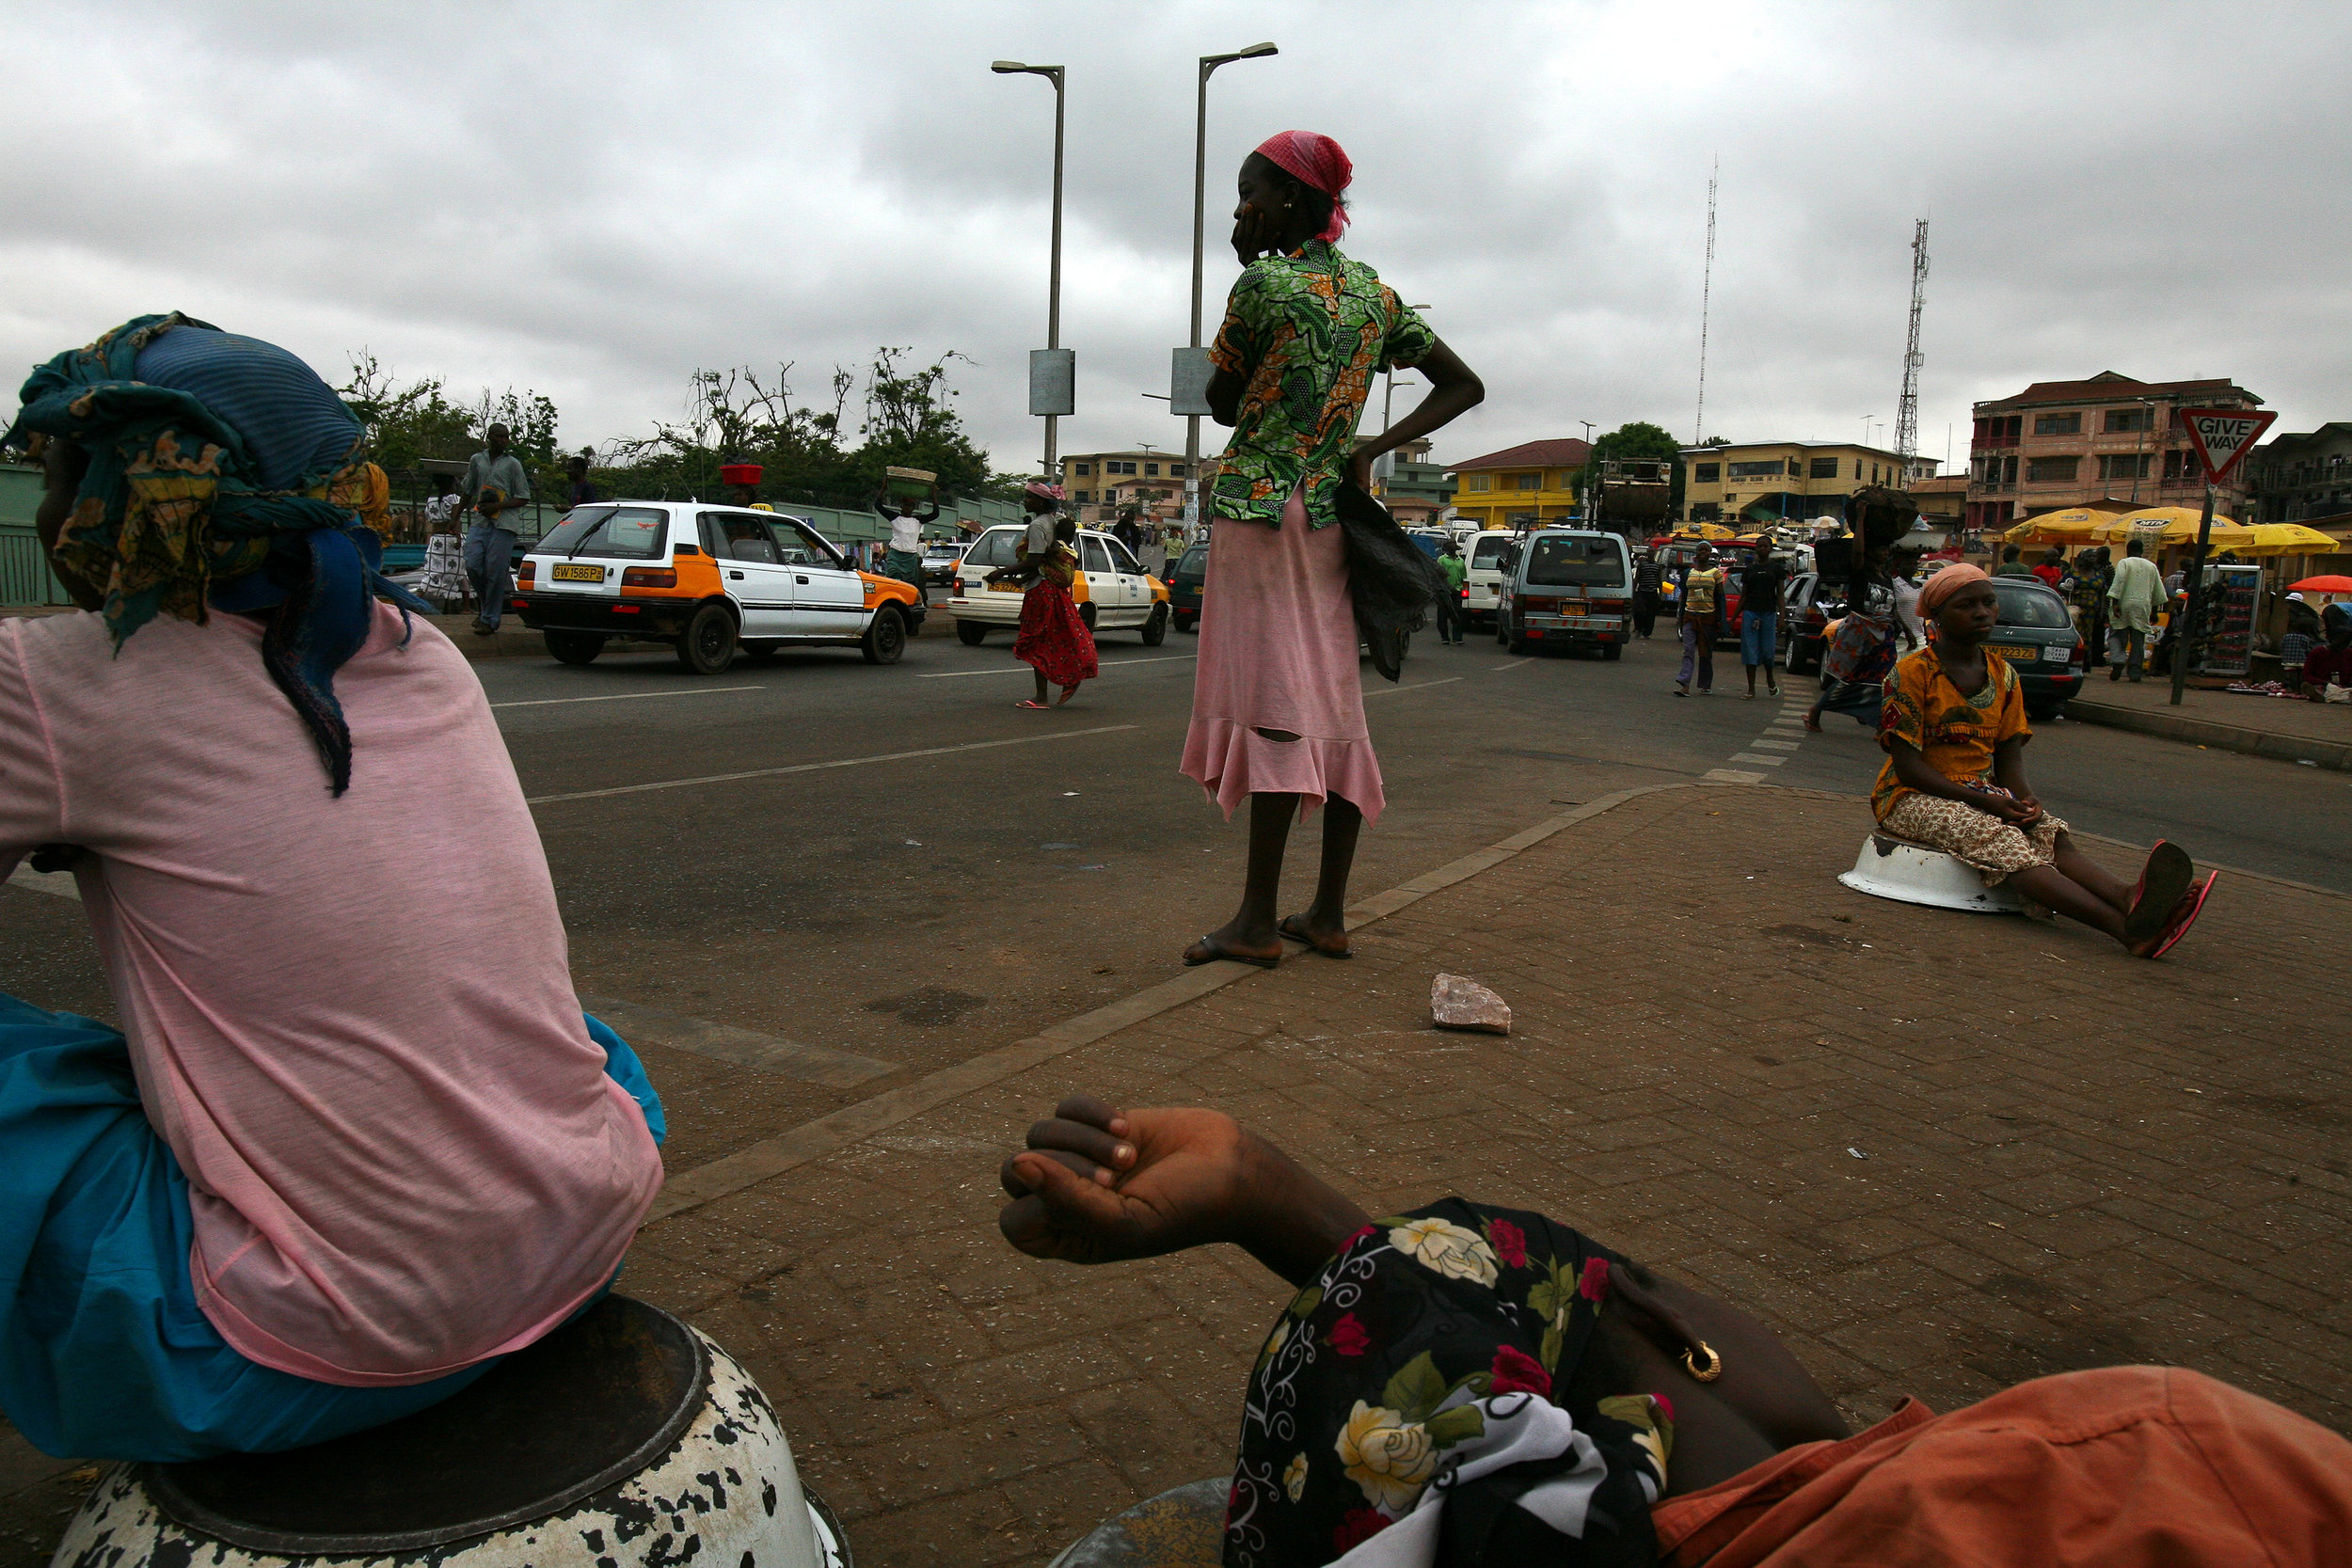 Girls from northern Ghana wait for work at an intersection in Kumasi, Ghana on April 10, 2009.